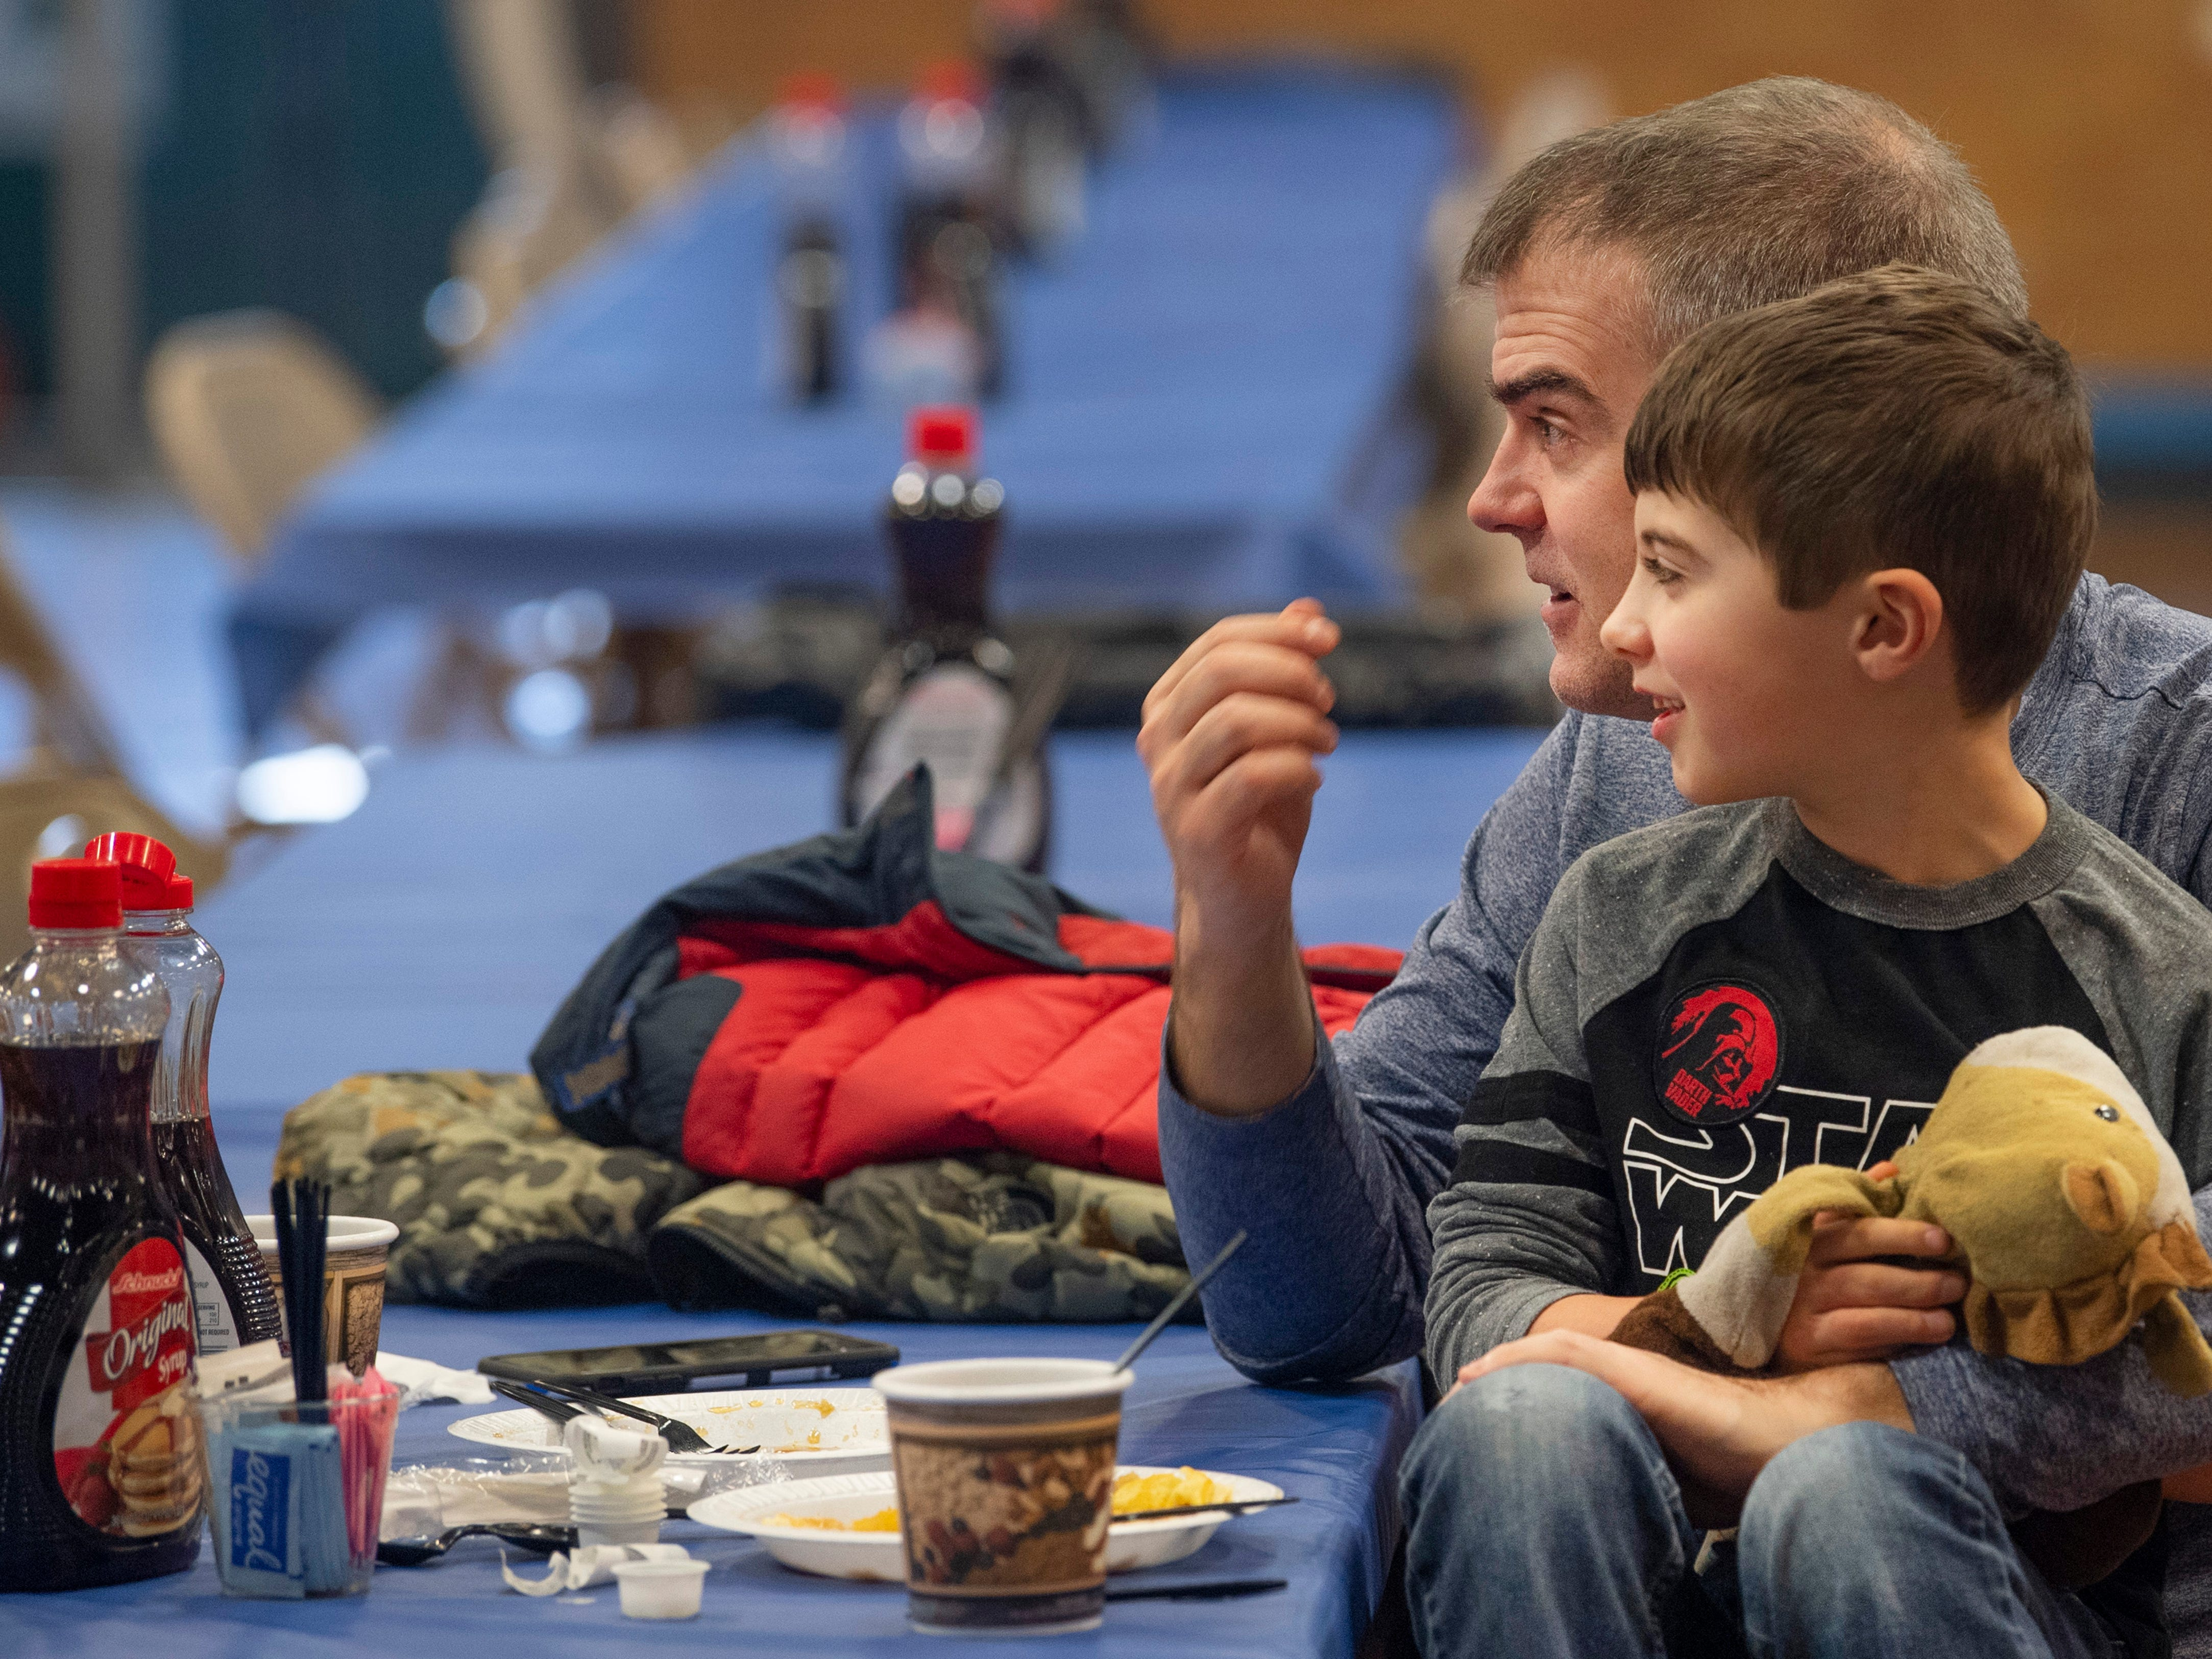 Troy Vaupel and his son, Ethan, 7, finish up their last batch of pancakes at the 31st Annual Pancake Days at the Downtown YMCA Friday morning. The pancakes, sausage, milk, coffee and orange juice will be served up again Saturday from 6 a.m. to 1 p.m. and Sunday from 8 a.m. to 1 p.m.